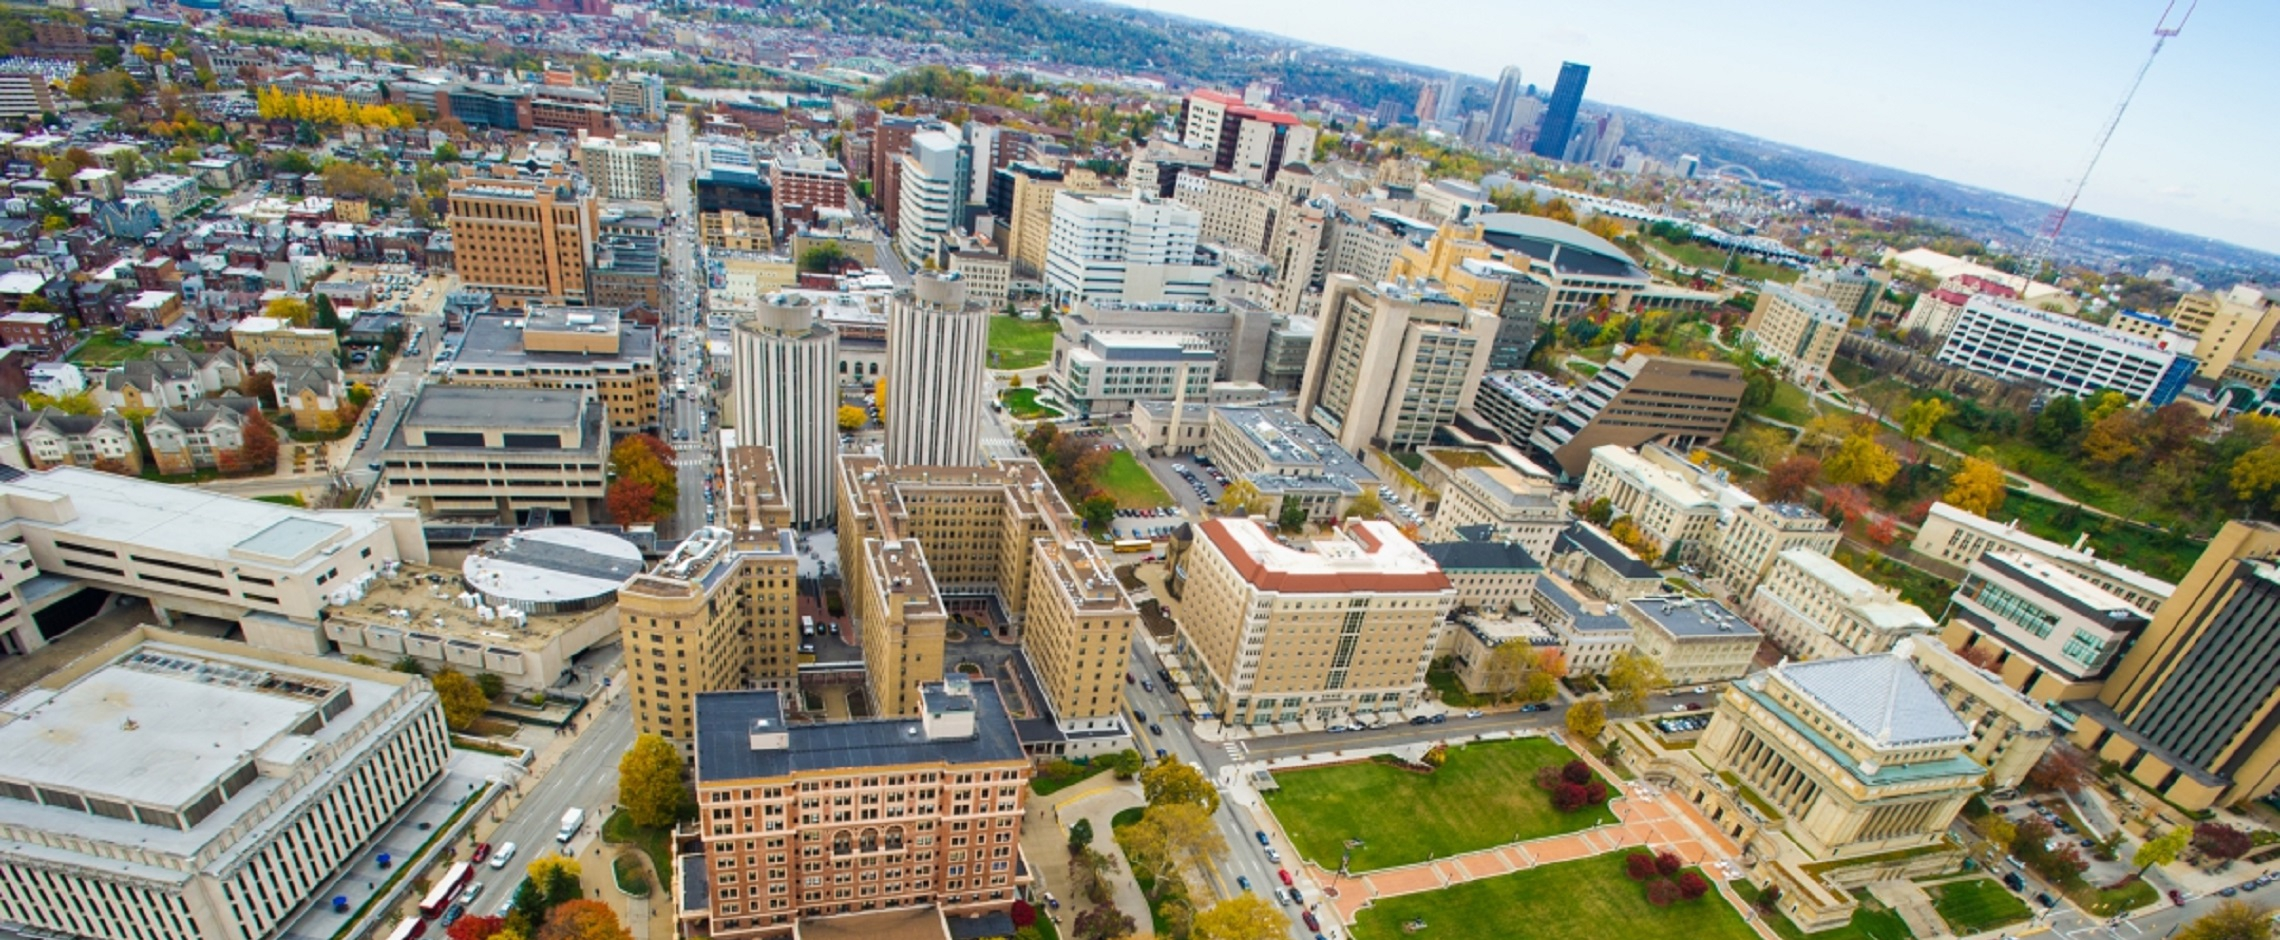 Aerial view of Pitt campus and city of Pittsburgh